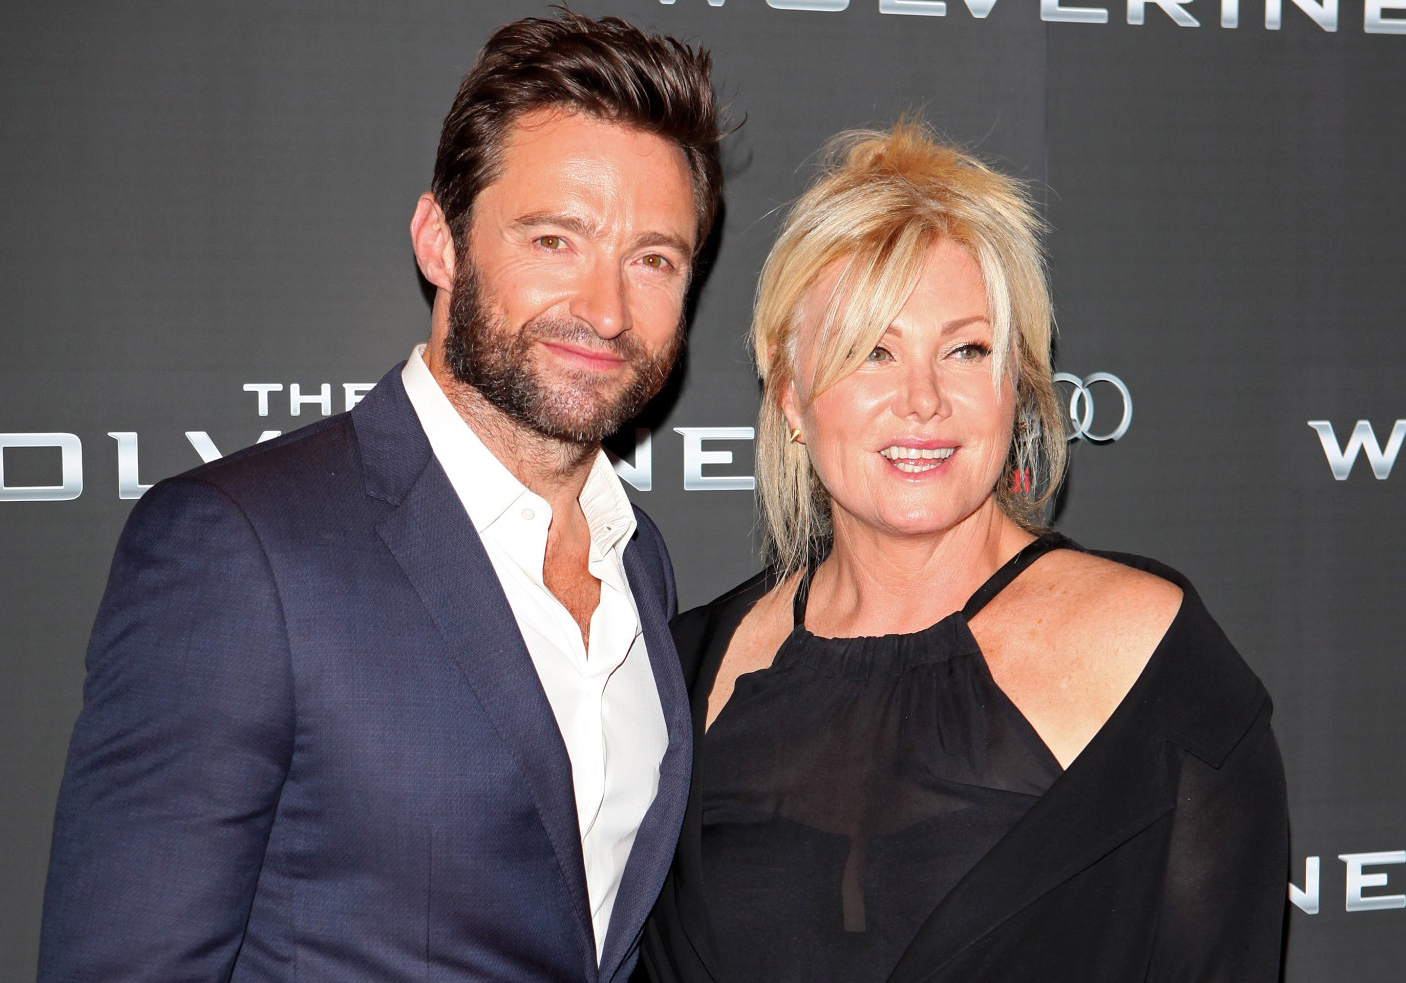 hugh-jackman-wife-picture-and-gratuite-and